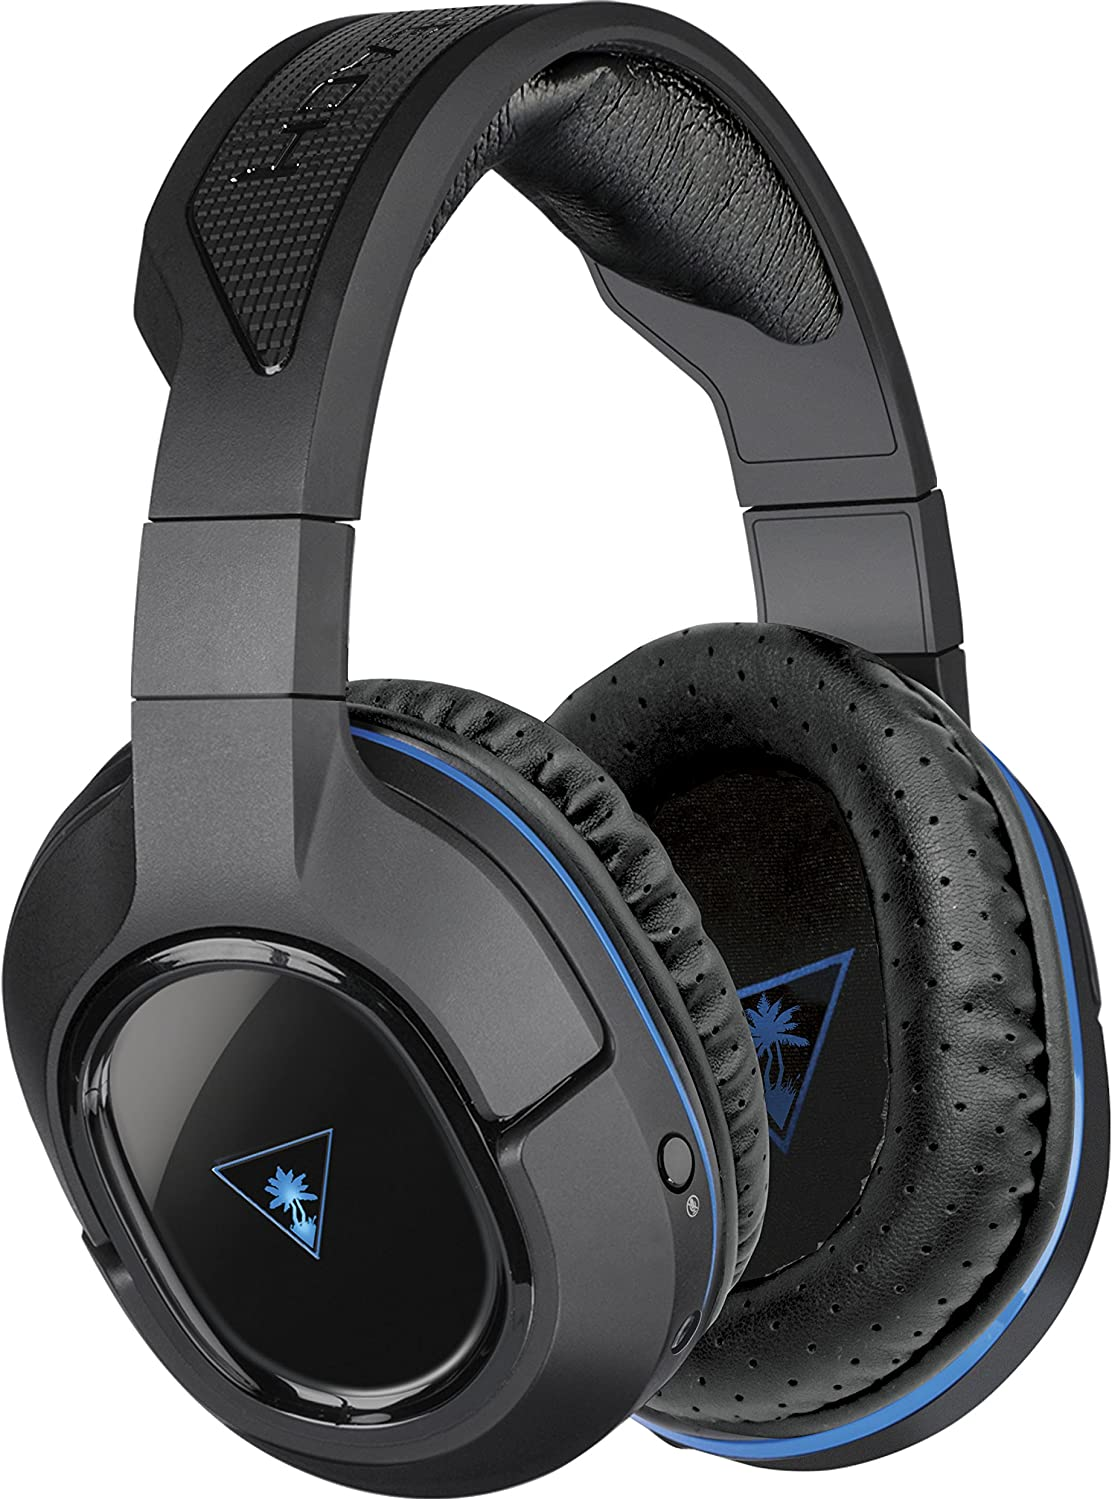 ed9c768b858 Amazon.com: Turtle Beach - Ear Force Stealth 500P Premium Fully Wireless  Gaming Headset - DTS Headphone:X 7.1 Surround Sound - PS4, PS3, and Mobile  Devices ...